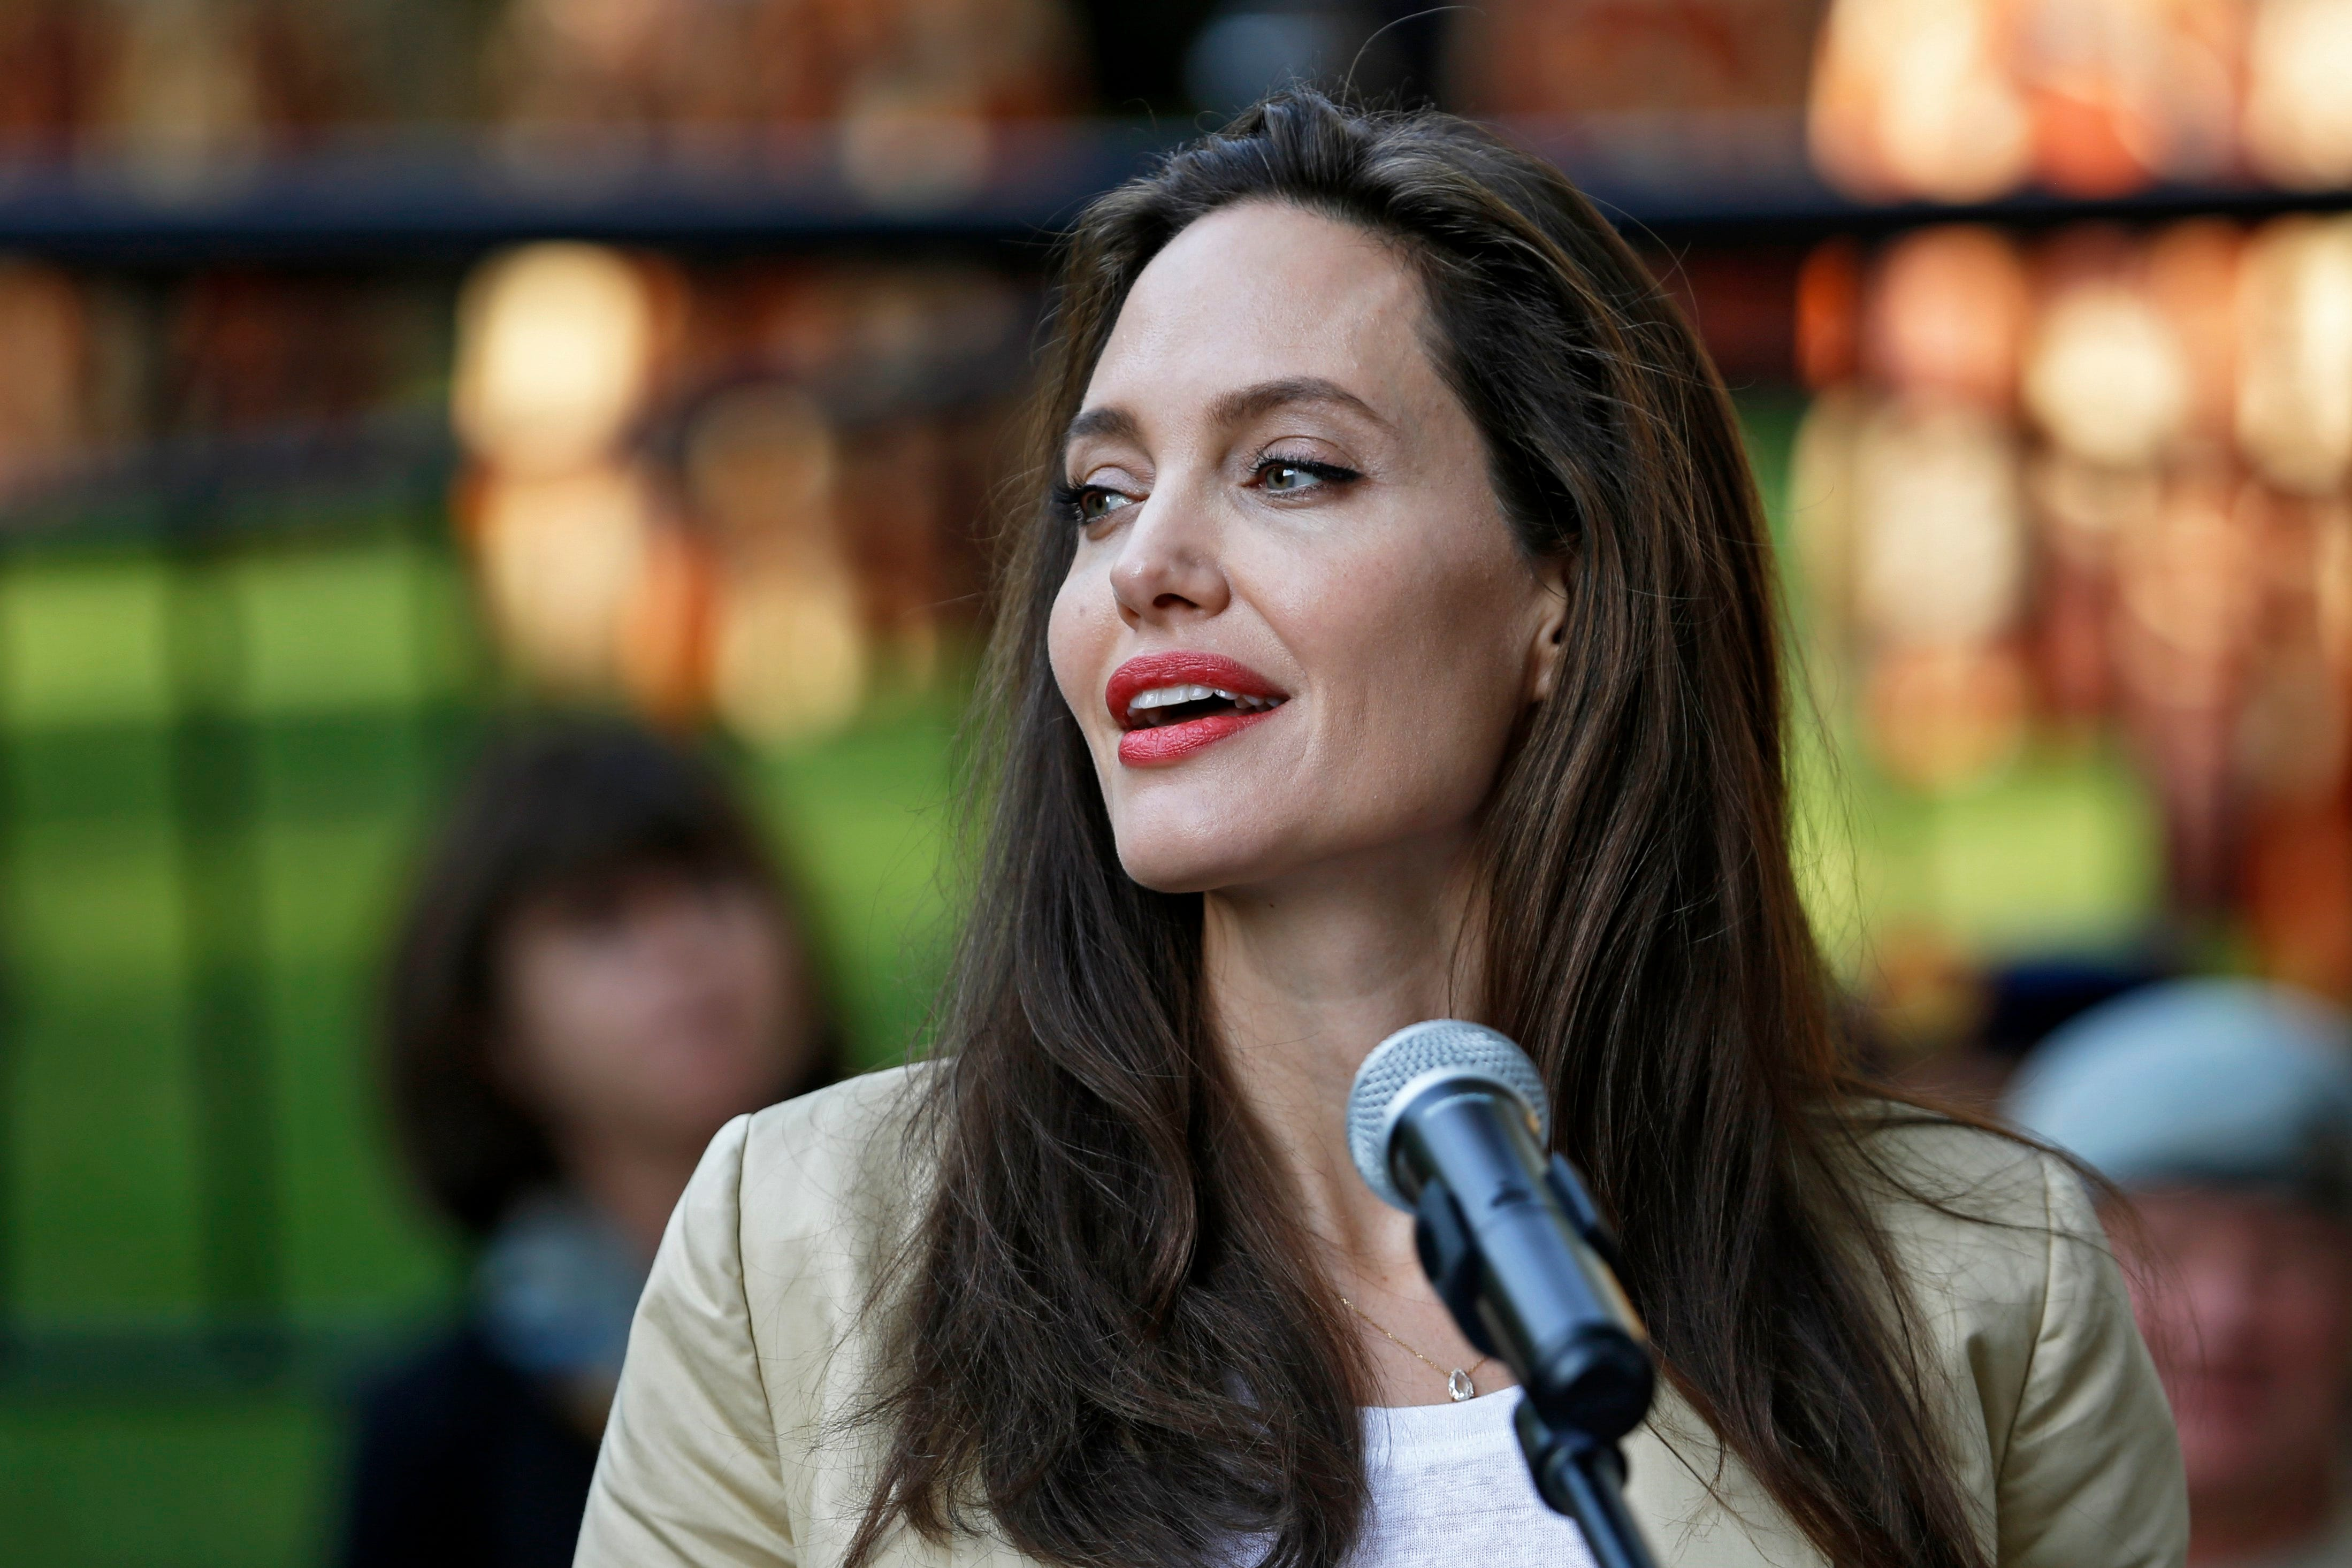 Bell's Palsy: The facial paralysis that's affected A-listers like Angelina Jolie and George Clooney